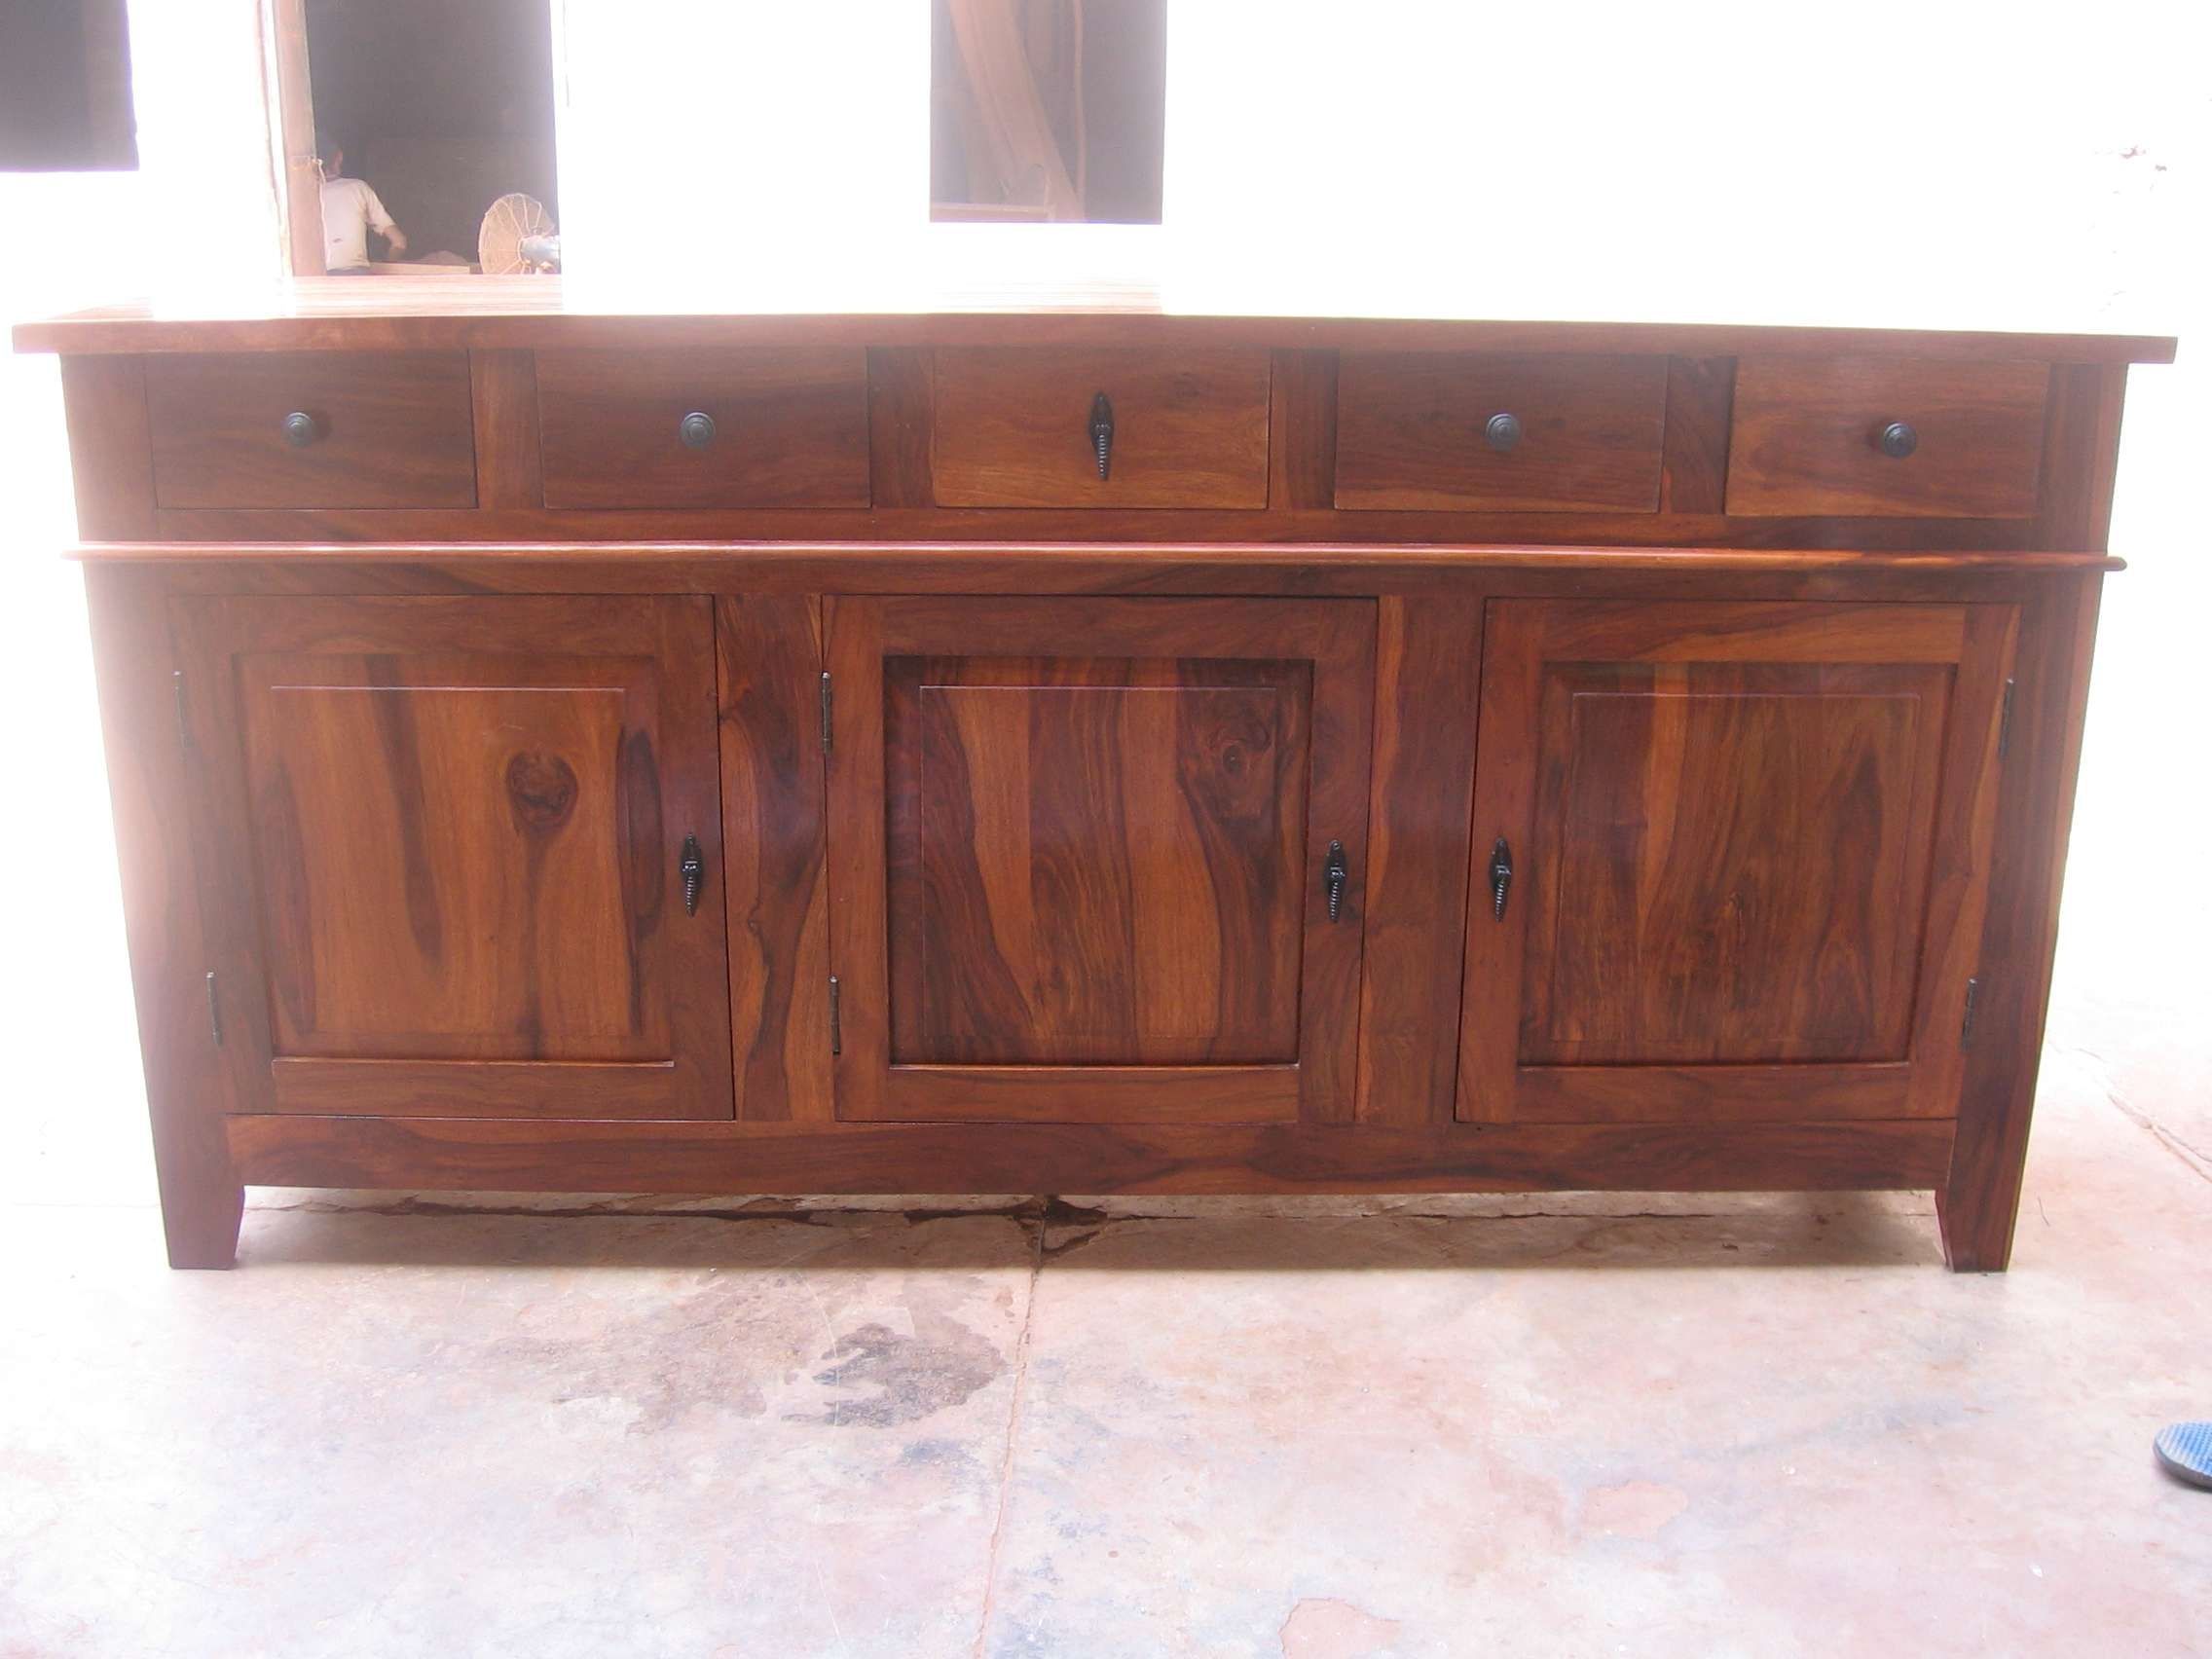 Dining Room Wooden Cabinets | Indian Wood Sideboard | Jodhpur With Regard To Indian Sideboards Furniture (View 6 of 20)